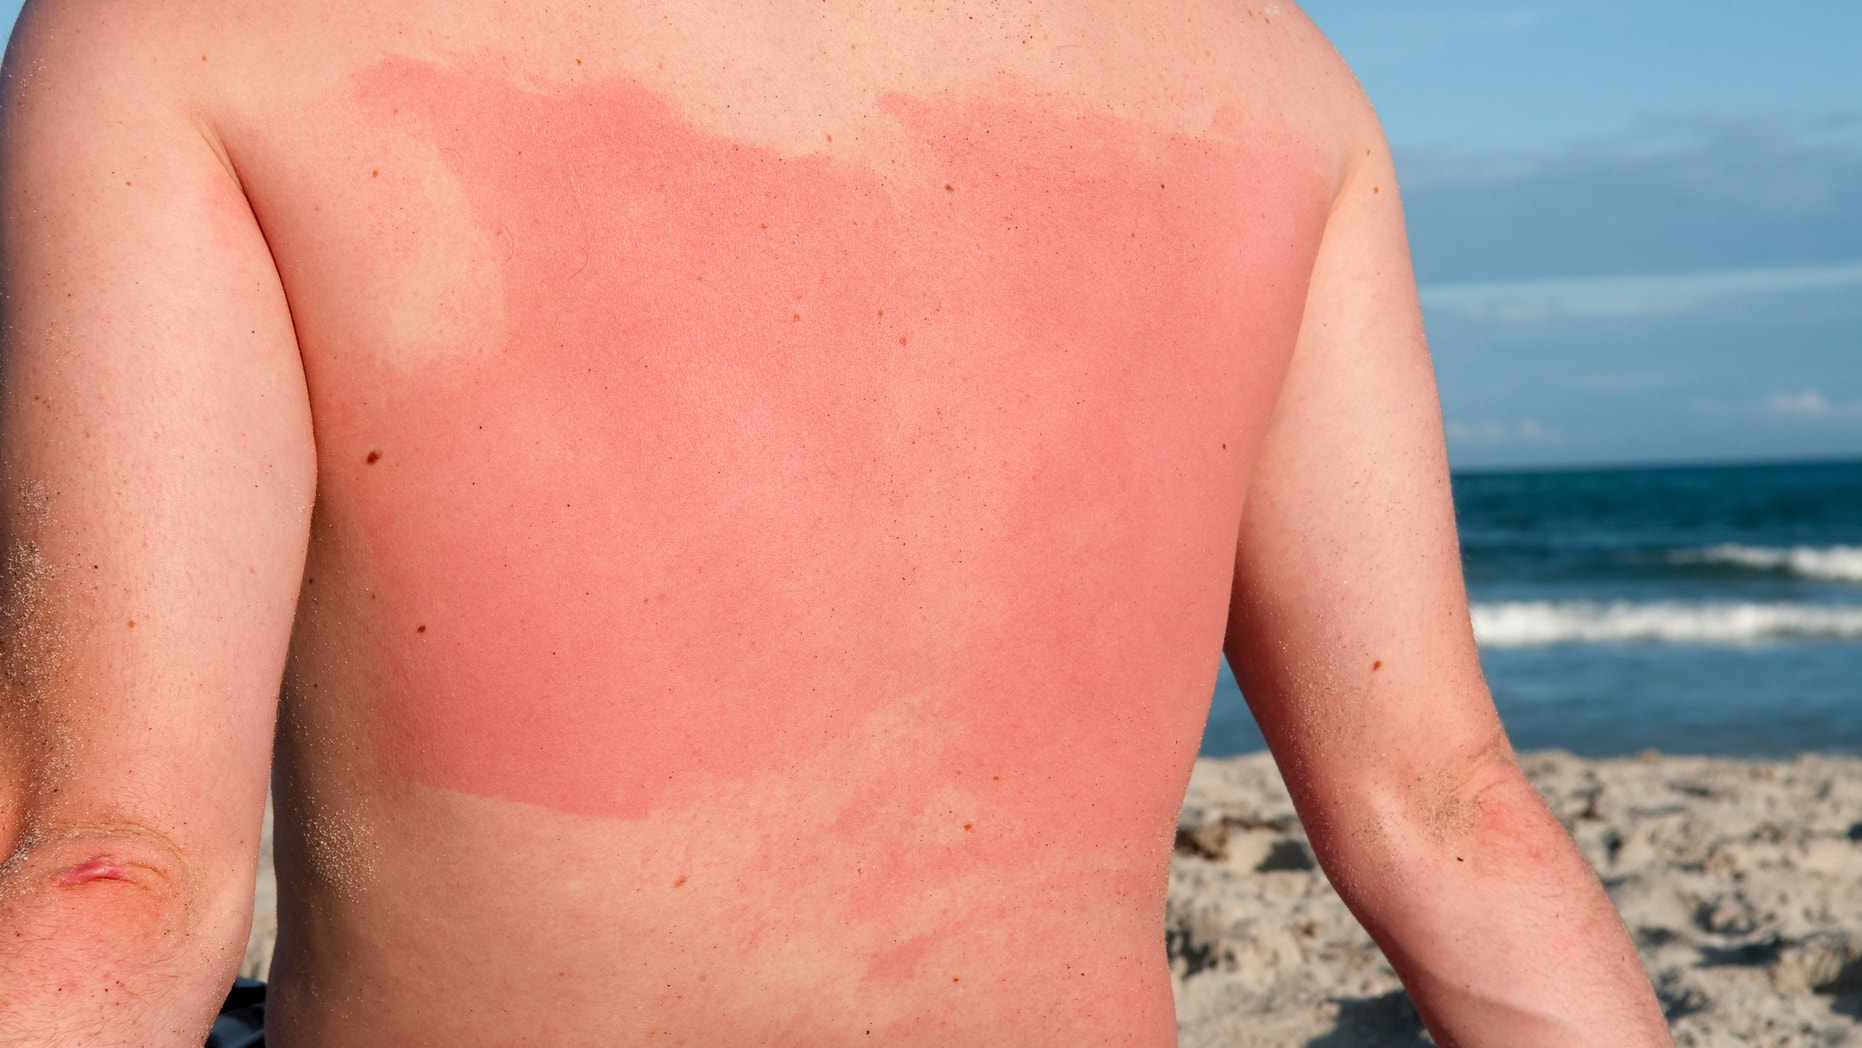 7 medications that increase sun and heat sensitivity | Fox News